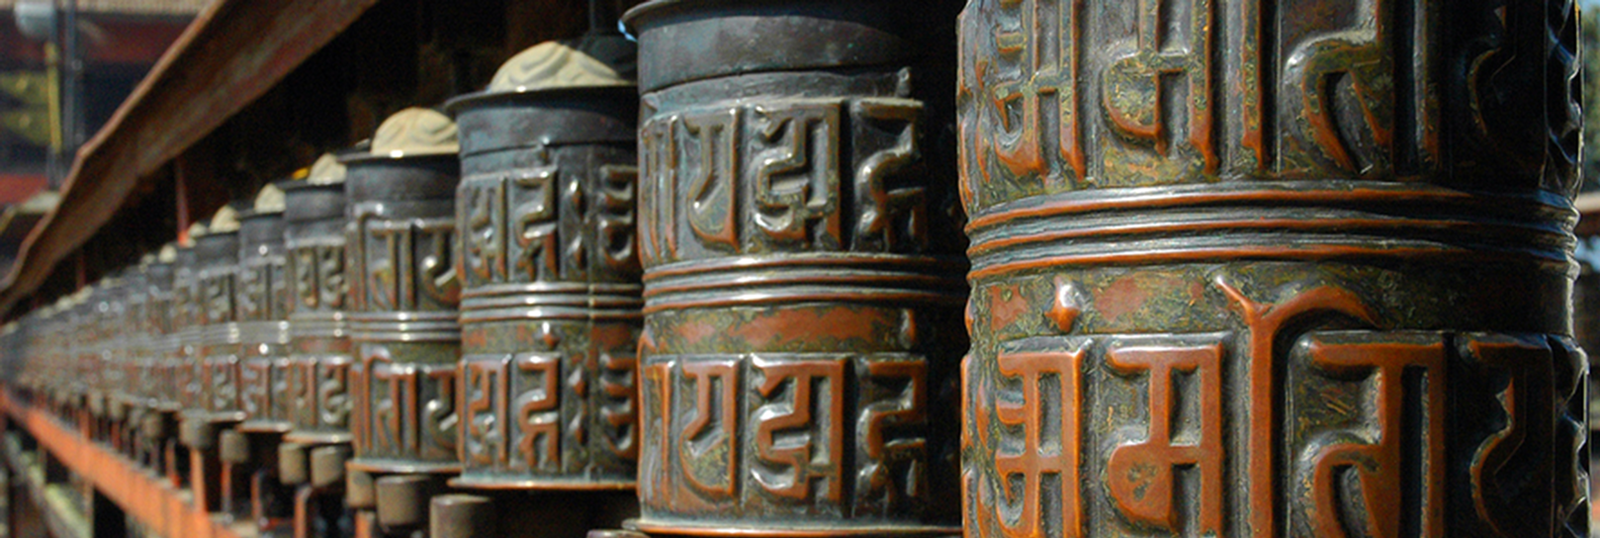 Himalayan Trade Handicrafts And Dharma Items From Nepal And Tibet